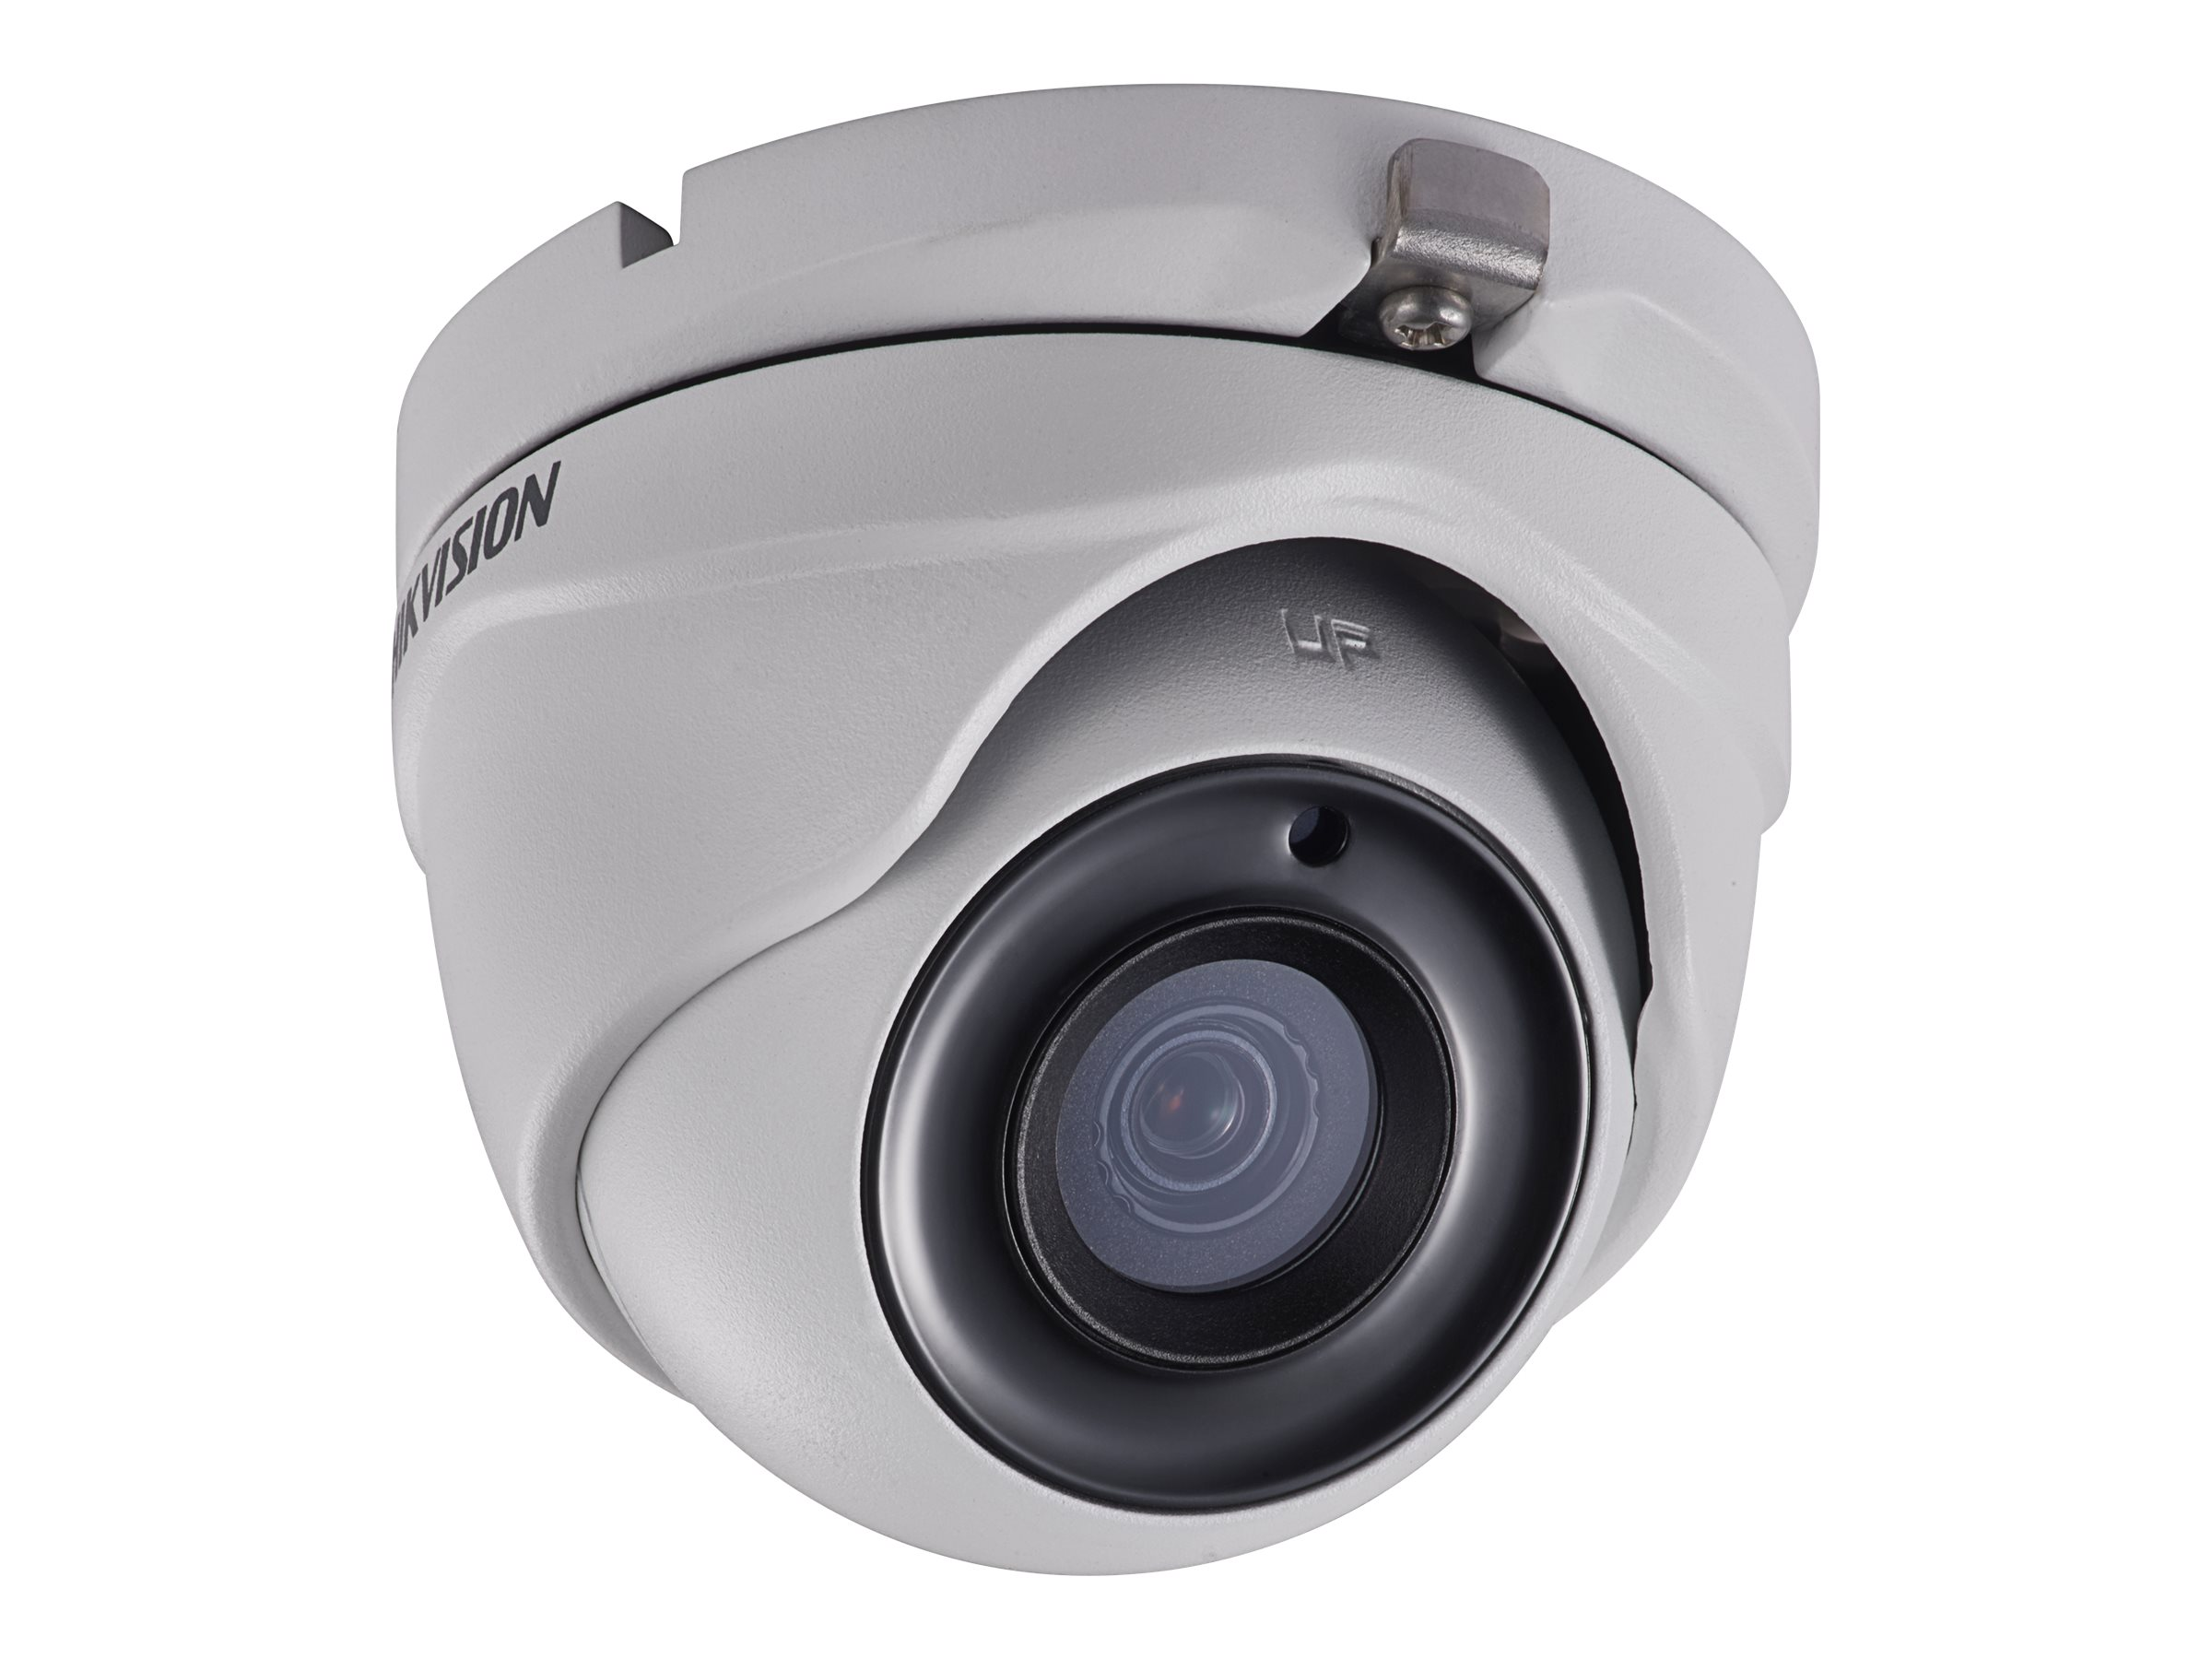 Hikvision Ultra-Low Light EXIR PoC Turret Camera DS-2CE56H5T-ITME - surveillance camera